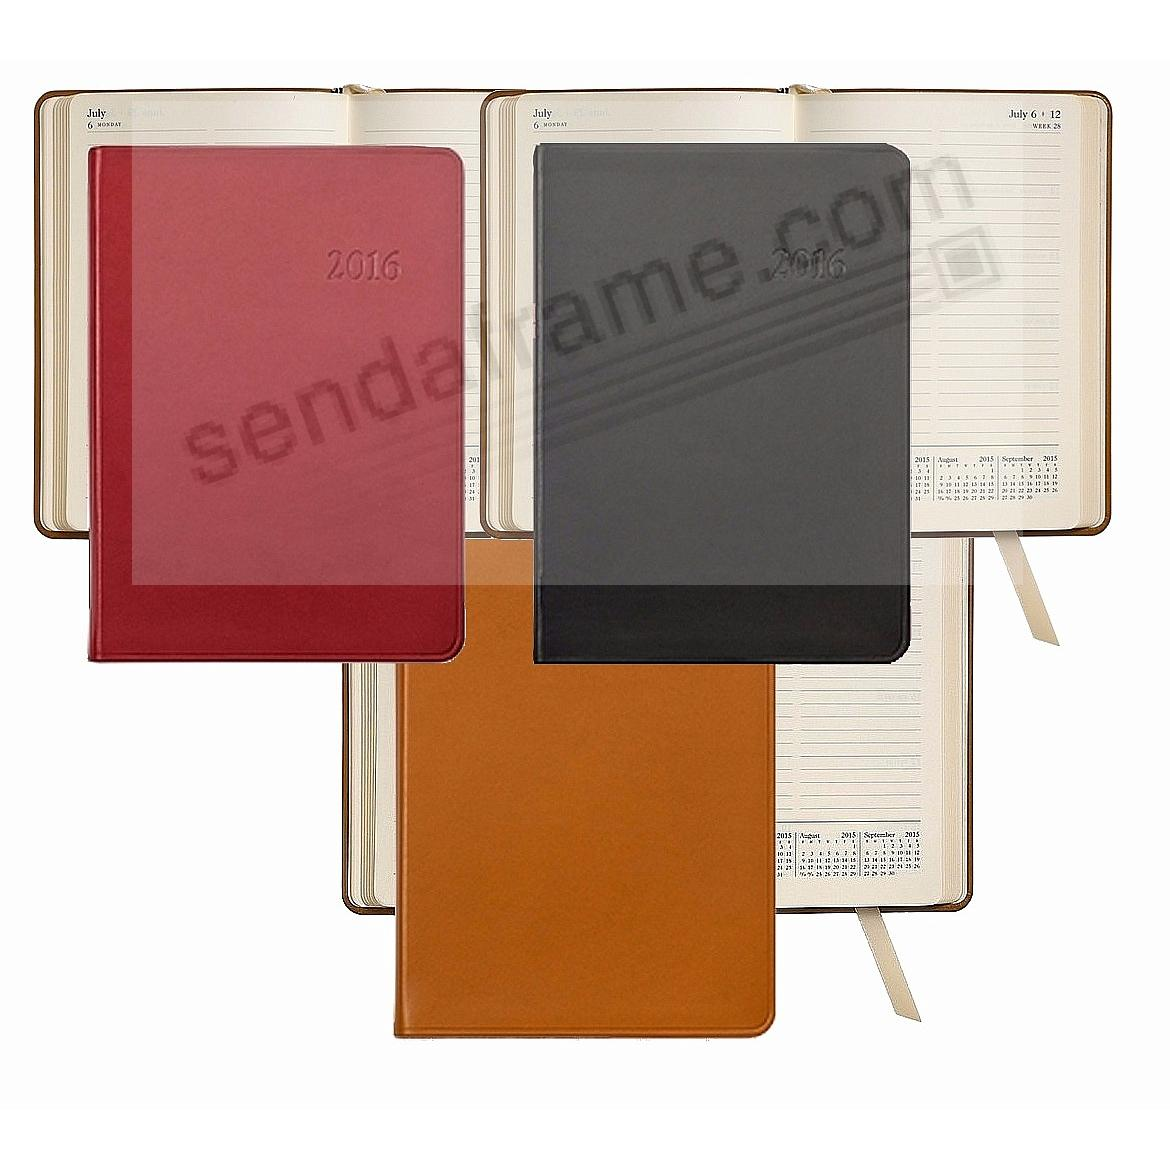 2016 ASSORTED COLORS Notebook Planner 7inch Fine Leather by Graphic Image™